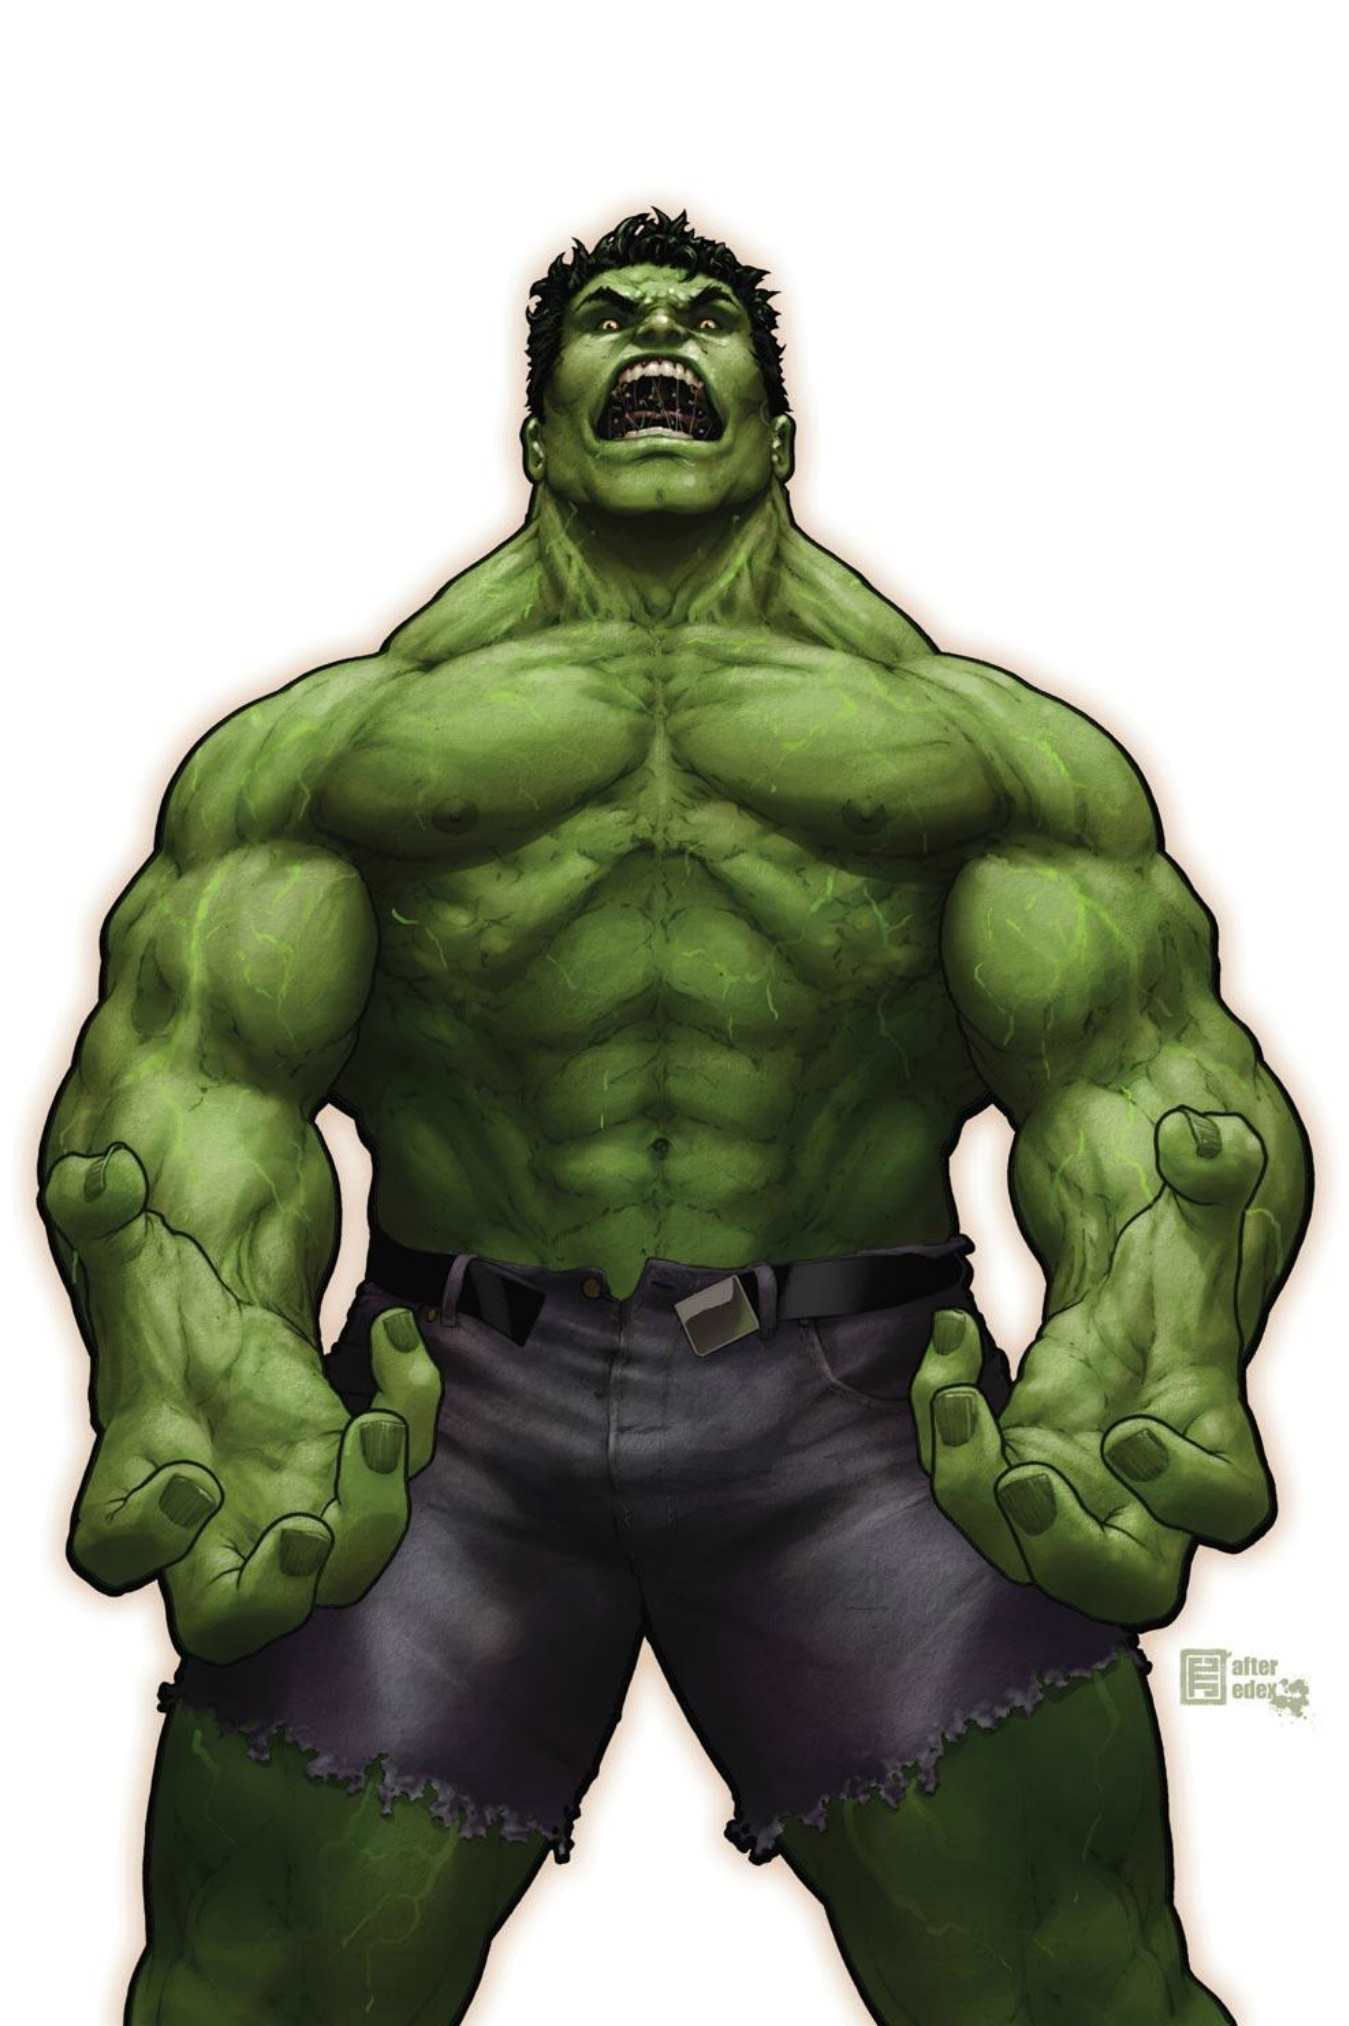 Hulk Fictional Marvel Comics Character